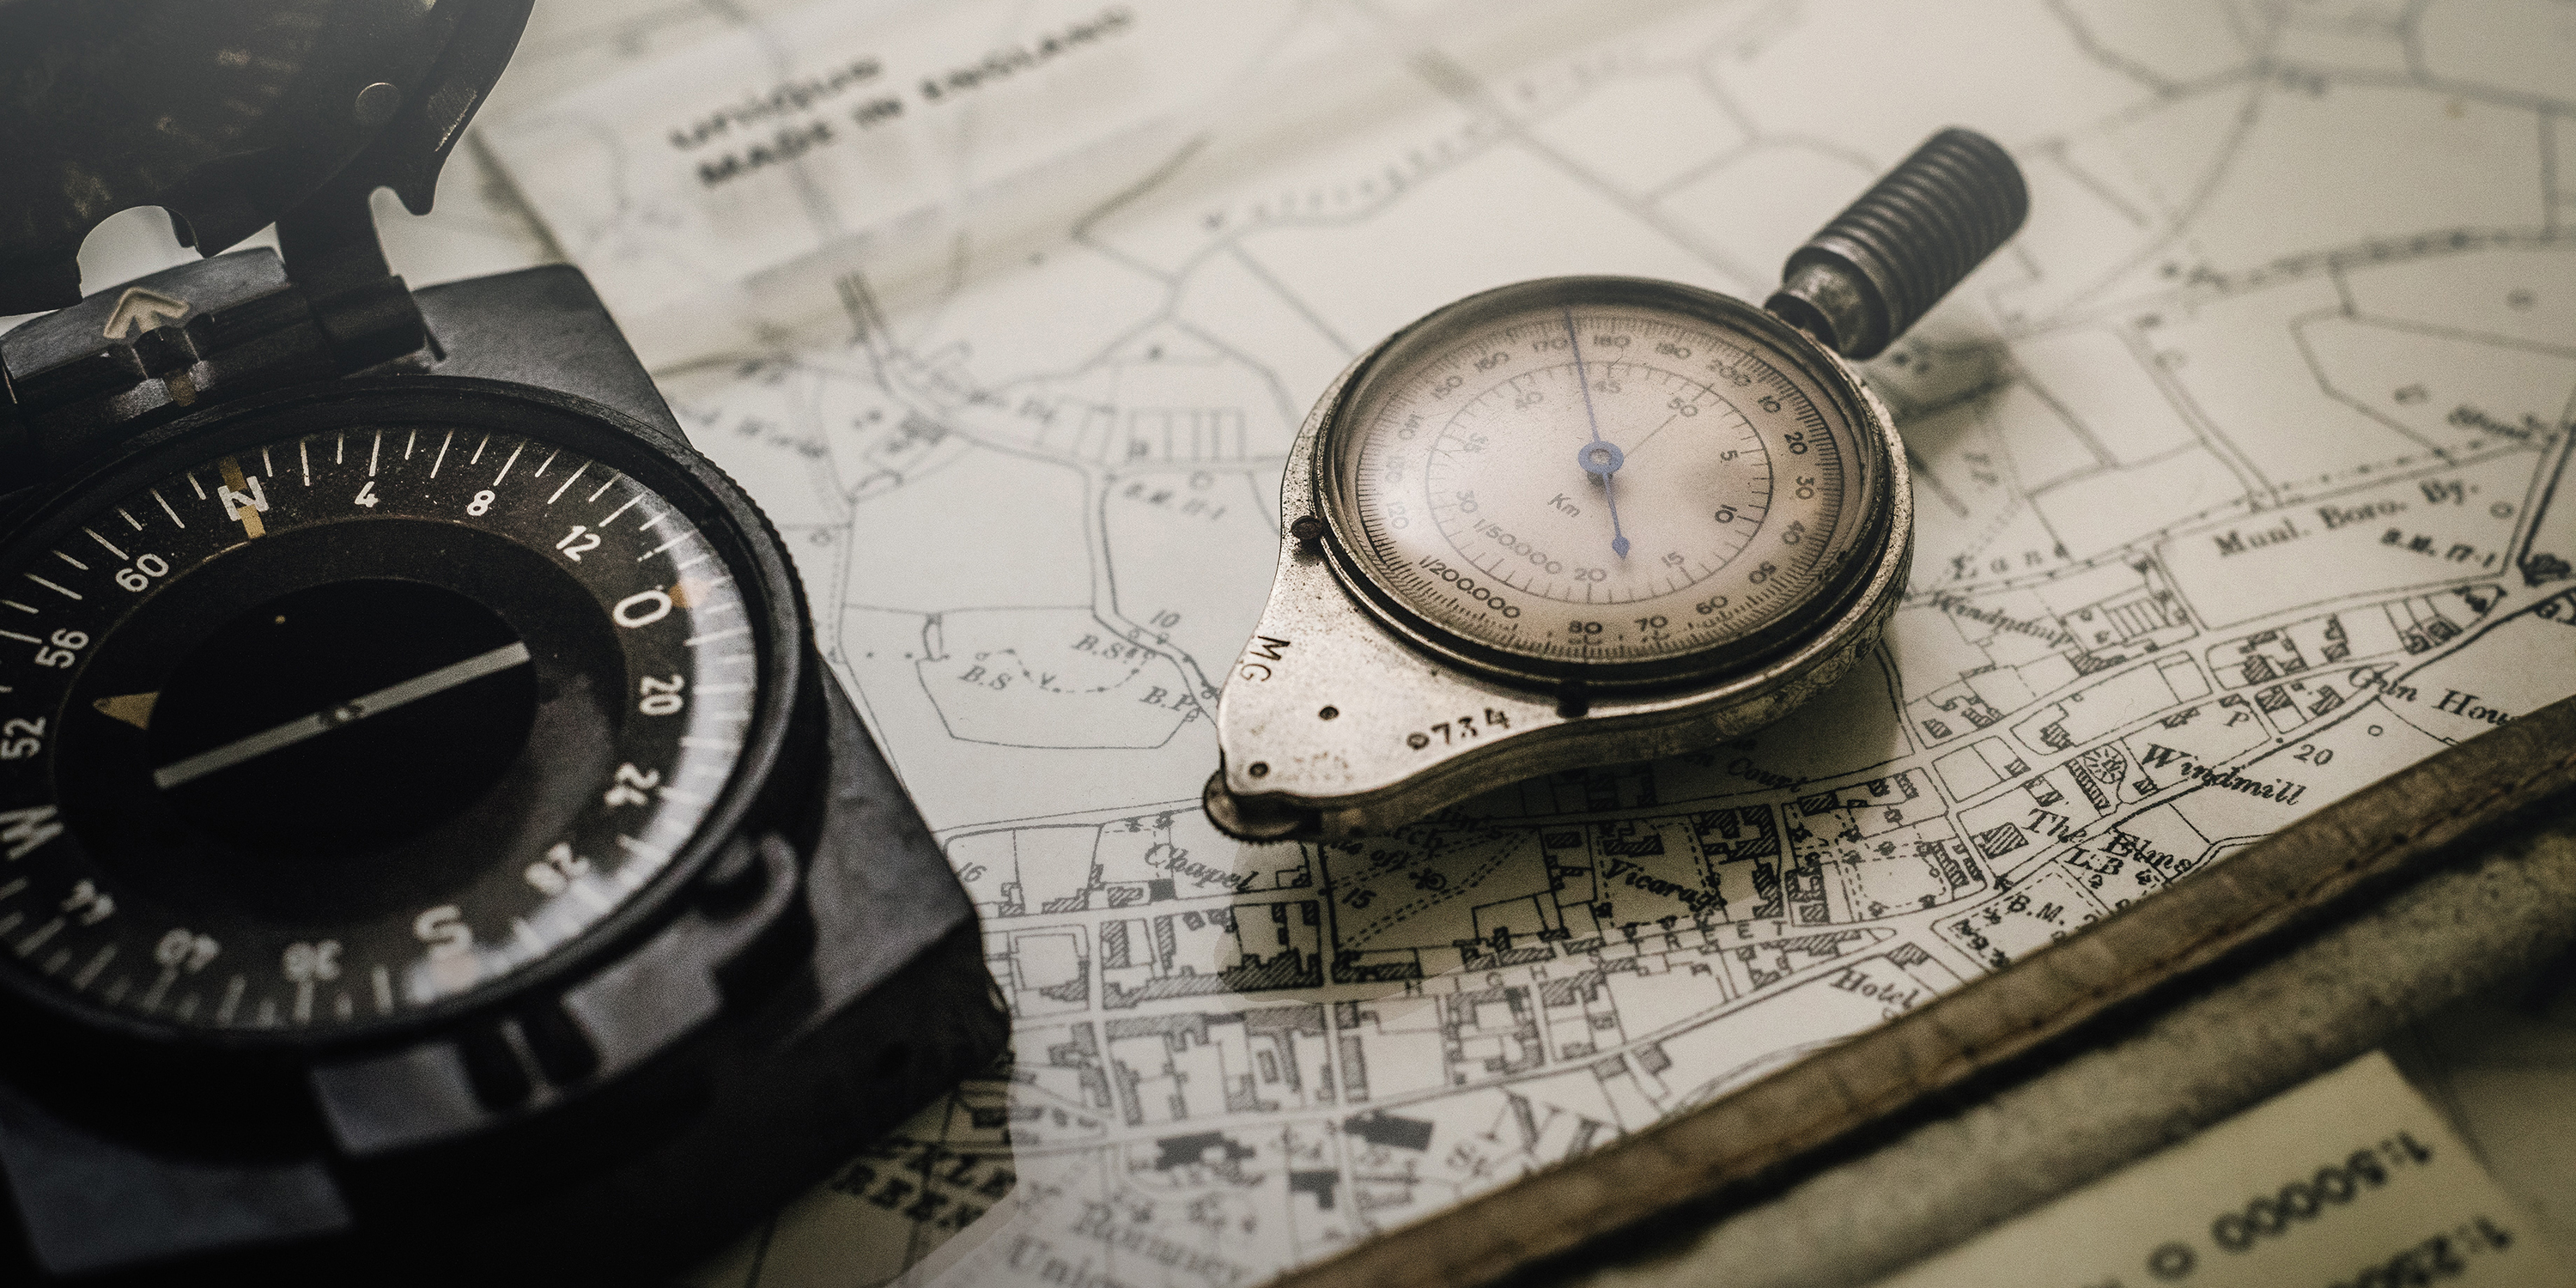 compass-w-map-3000x1500-72-andrews-alexander-4JdvOwrVzfY-unsplash